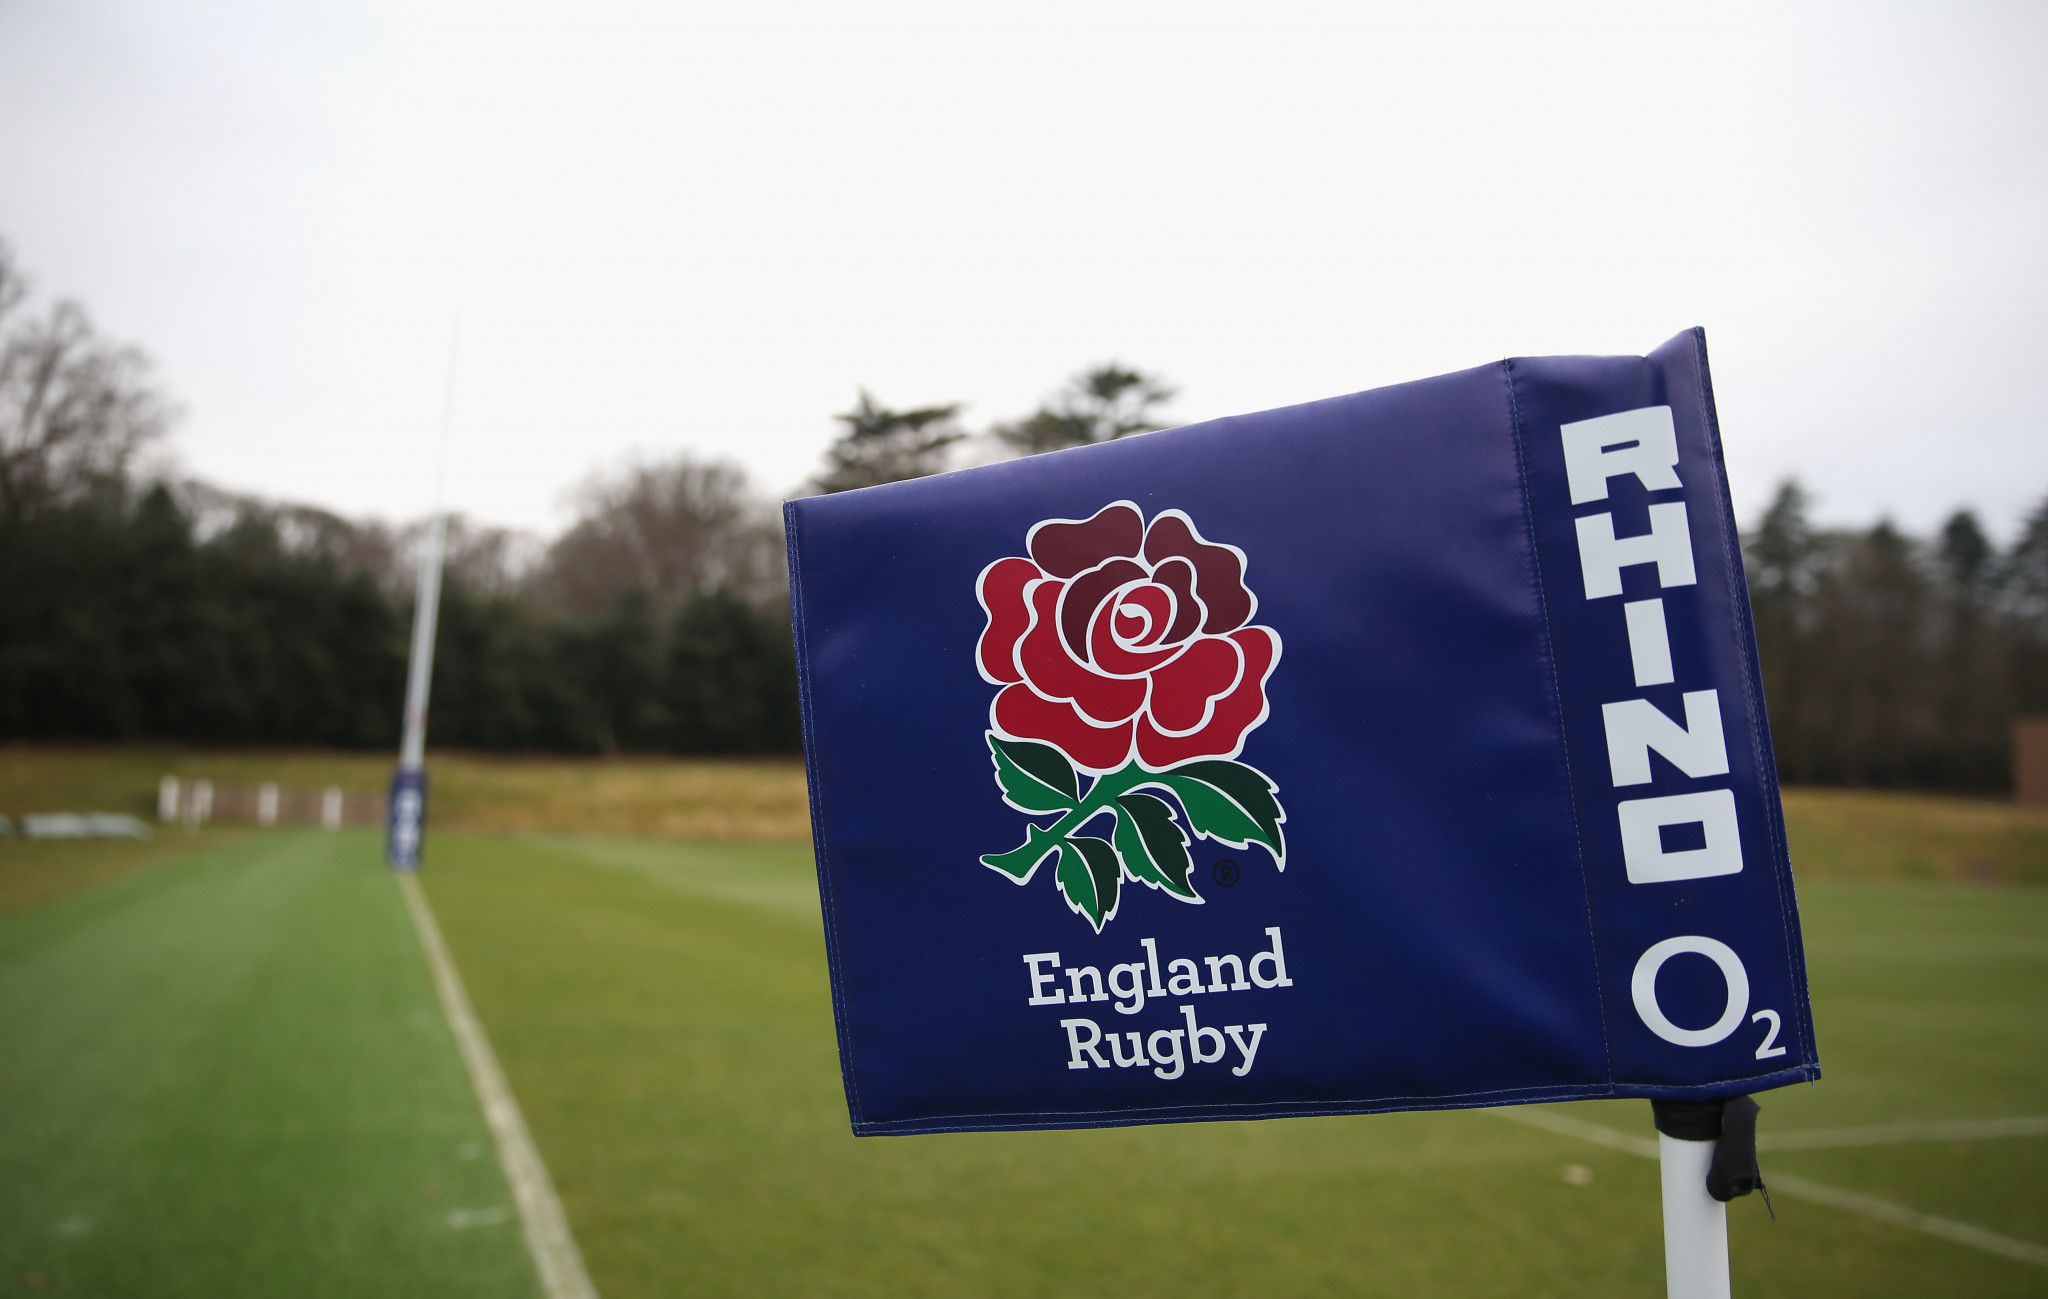 RFU to submit bid for Women's Rugby World Cup 2025